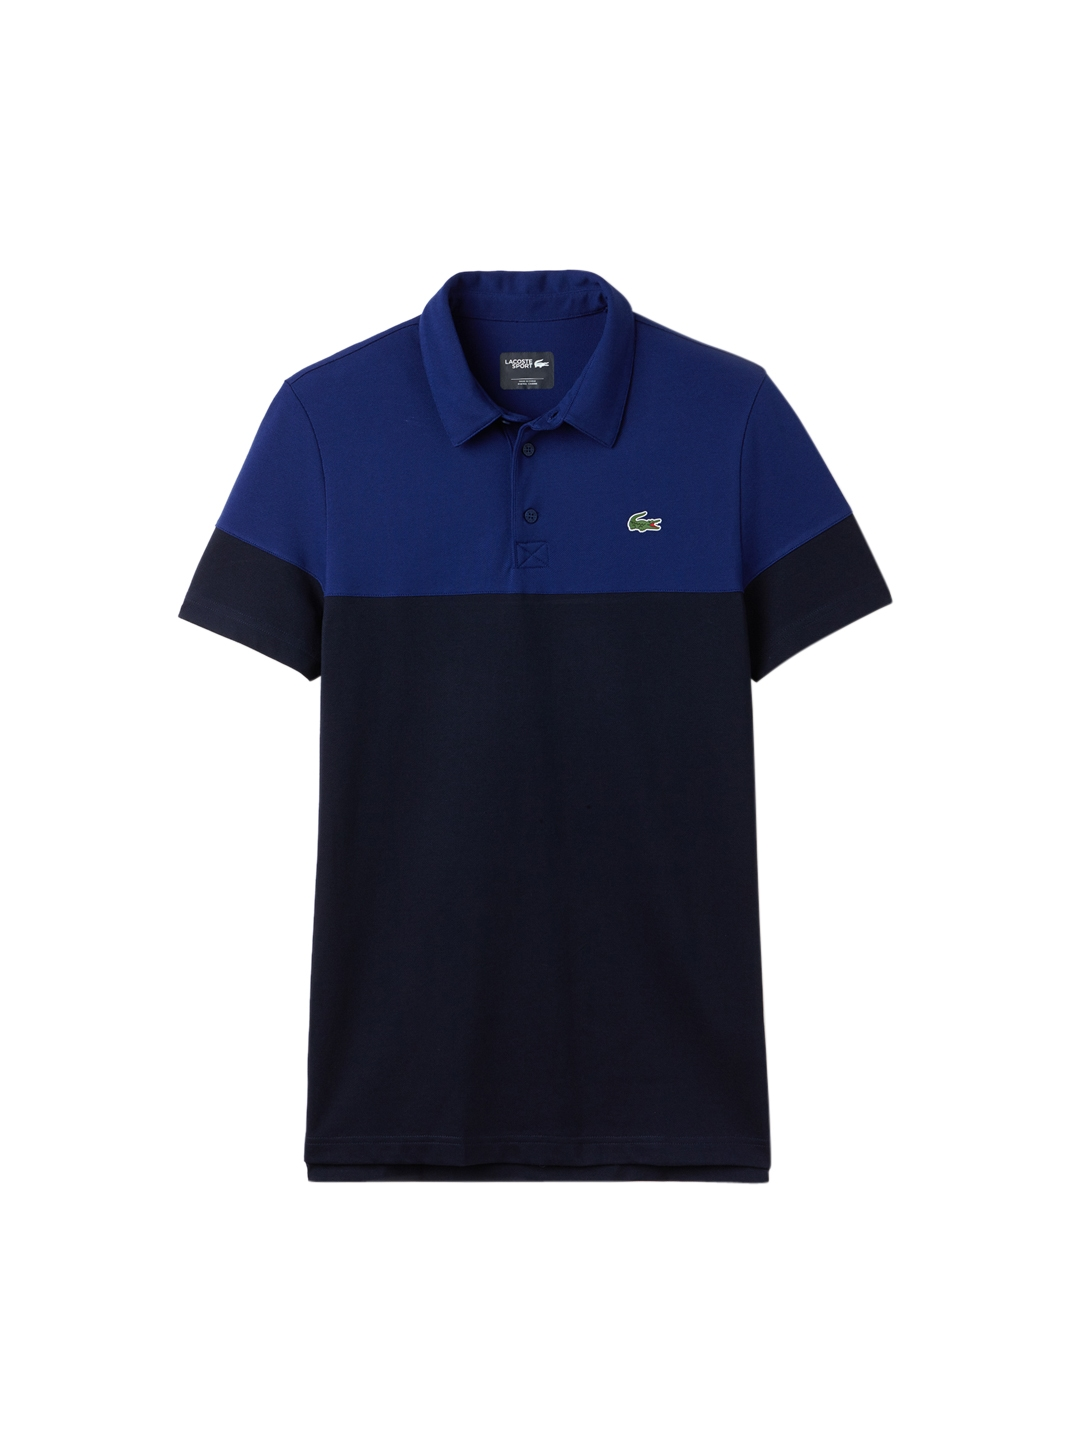 7ed0d5242a Buy Lacoste Men Navy Blue Sport Golf Colorblock Technical Pique Polo ...